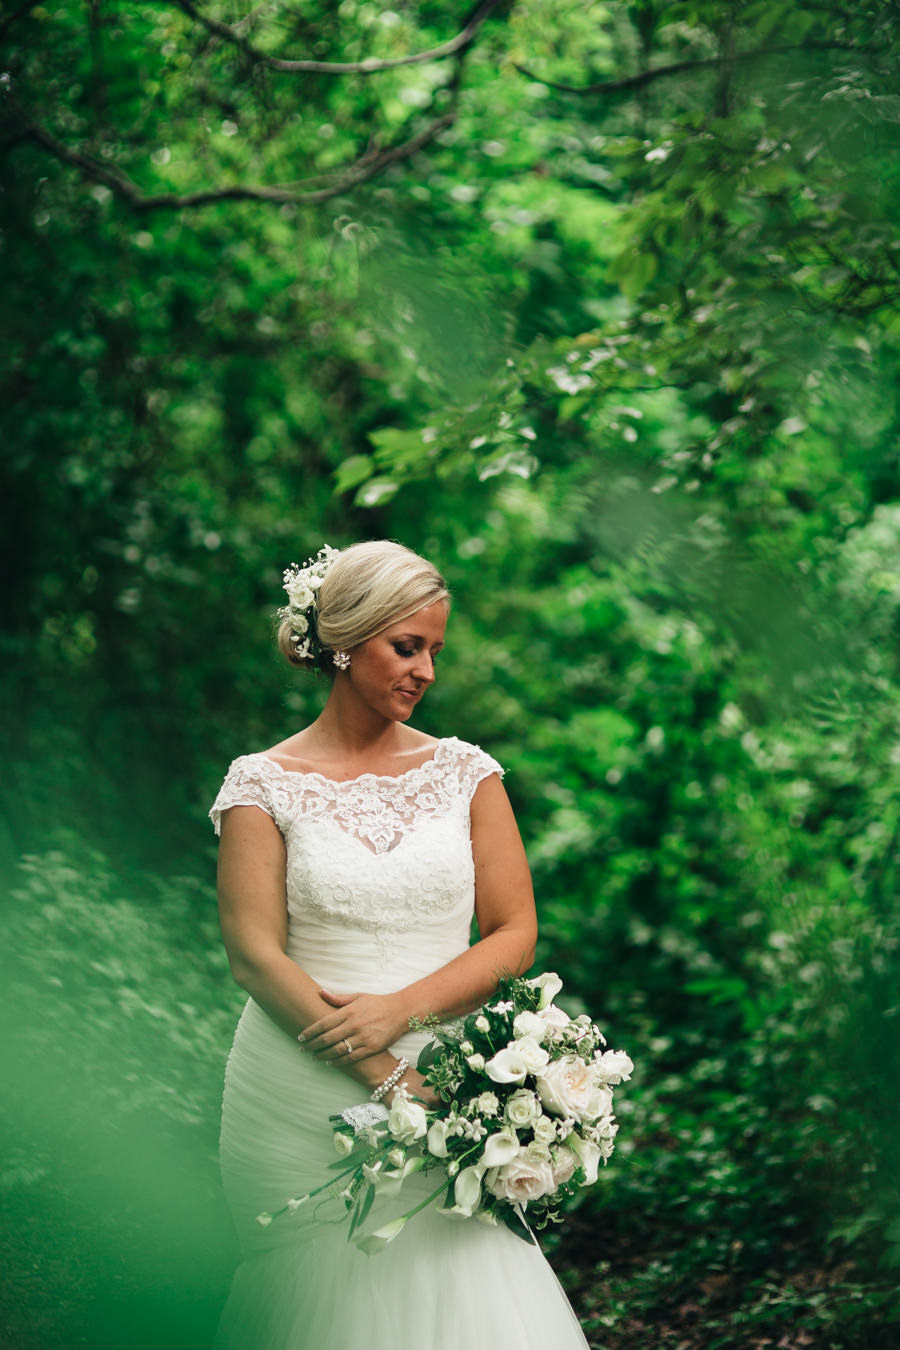 Bridal portrait at Wildwood Metropark in Toledo, Ohio